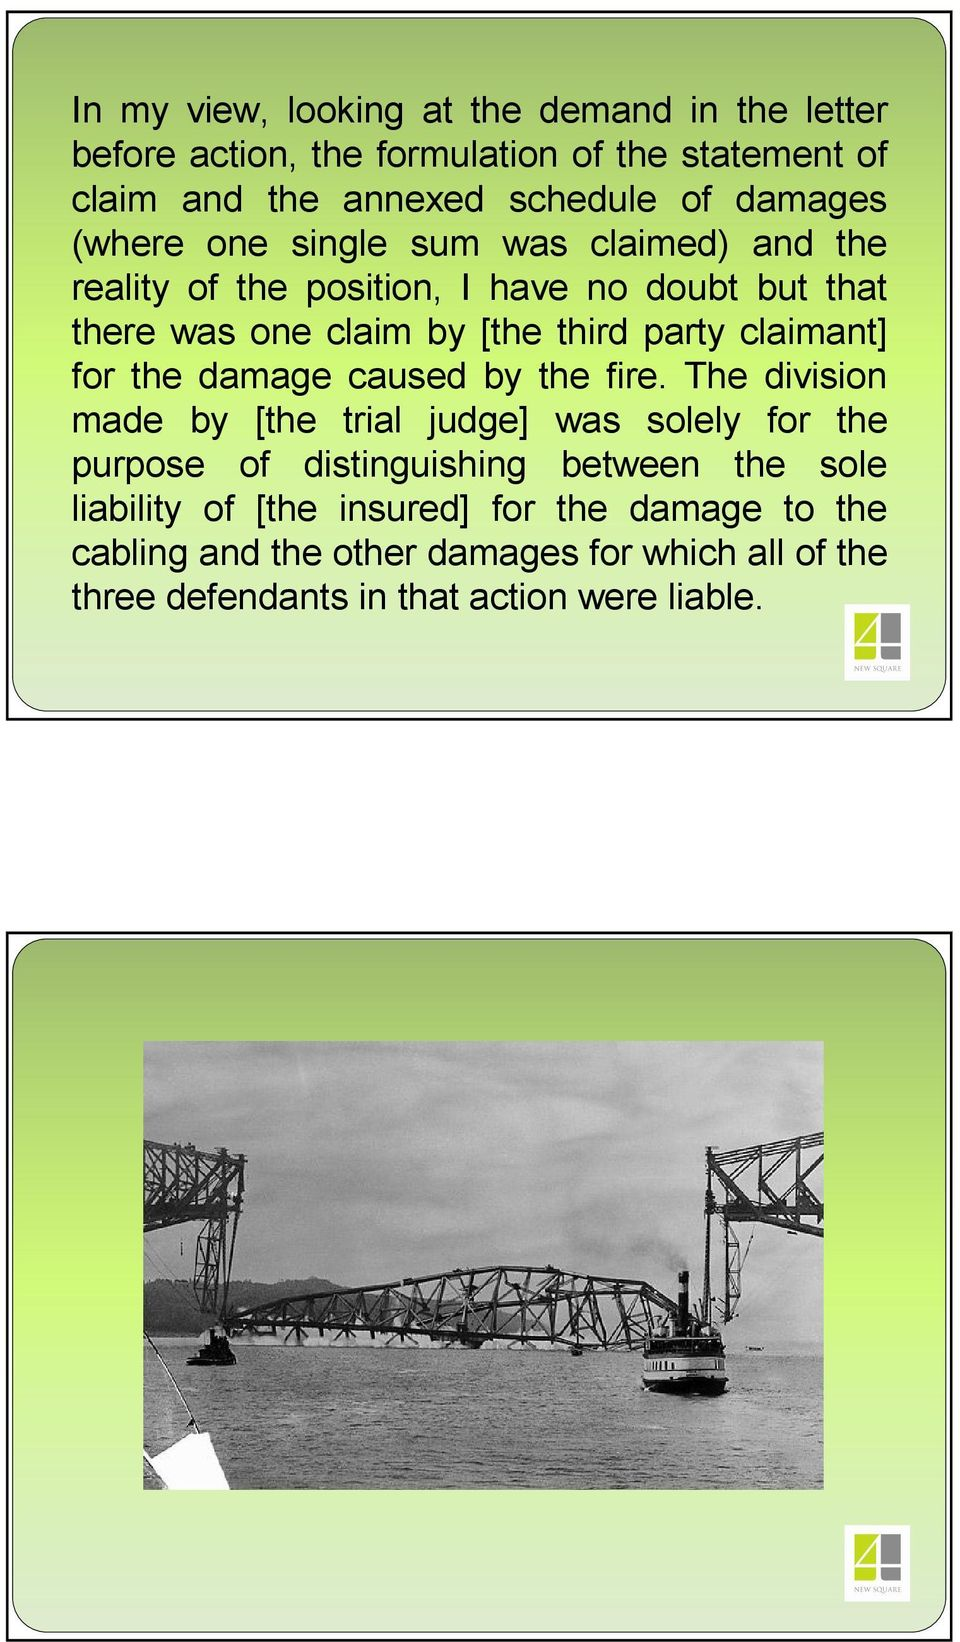 claimant] for the damage caused by the fire.